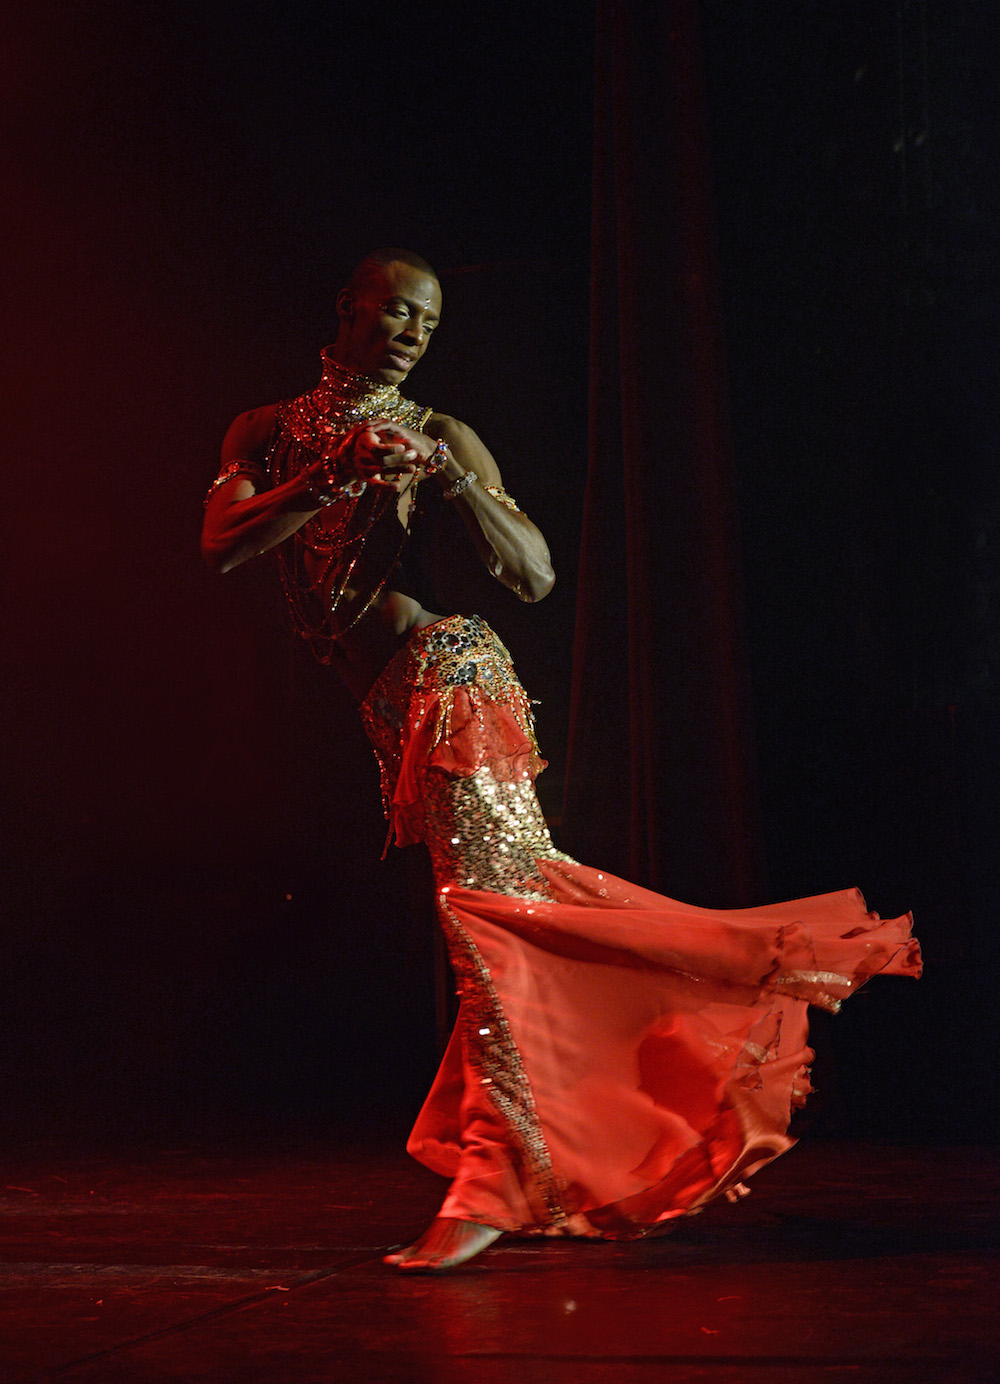 Featured Interview with Rachid Alexander: An International Phenomenon in Male Belly Dancing